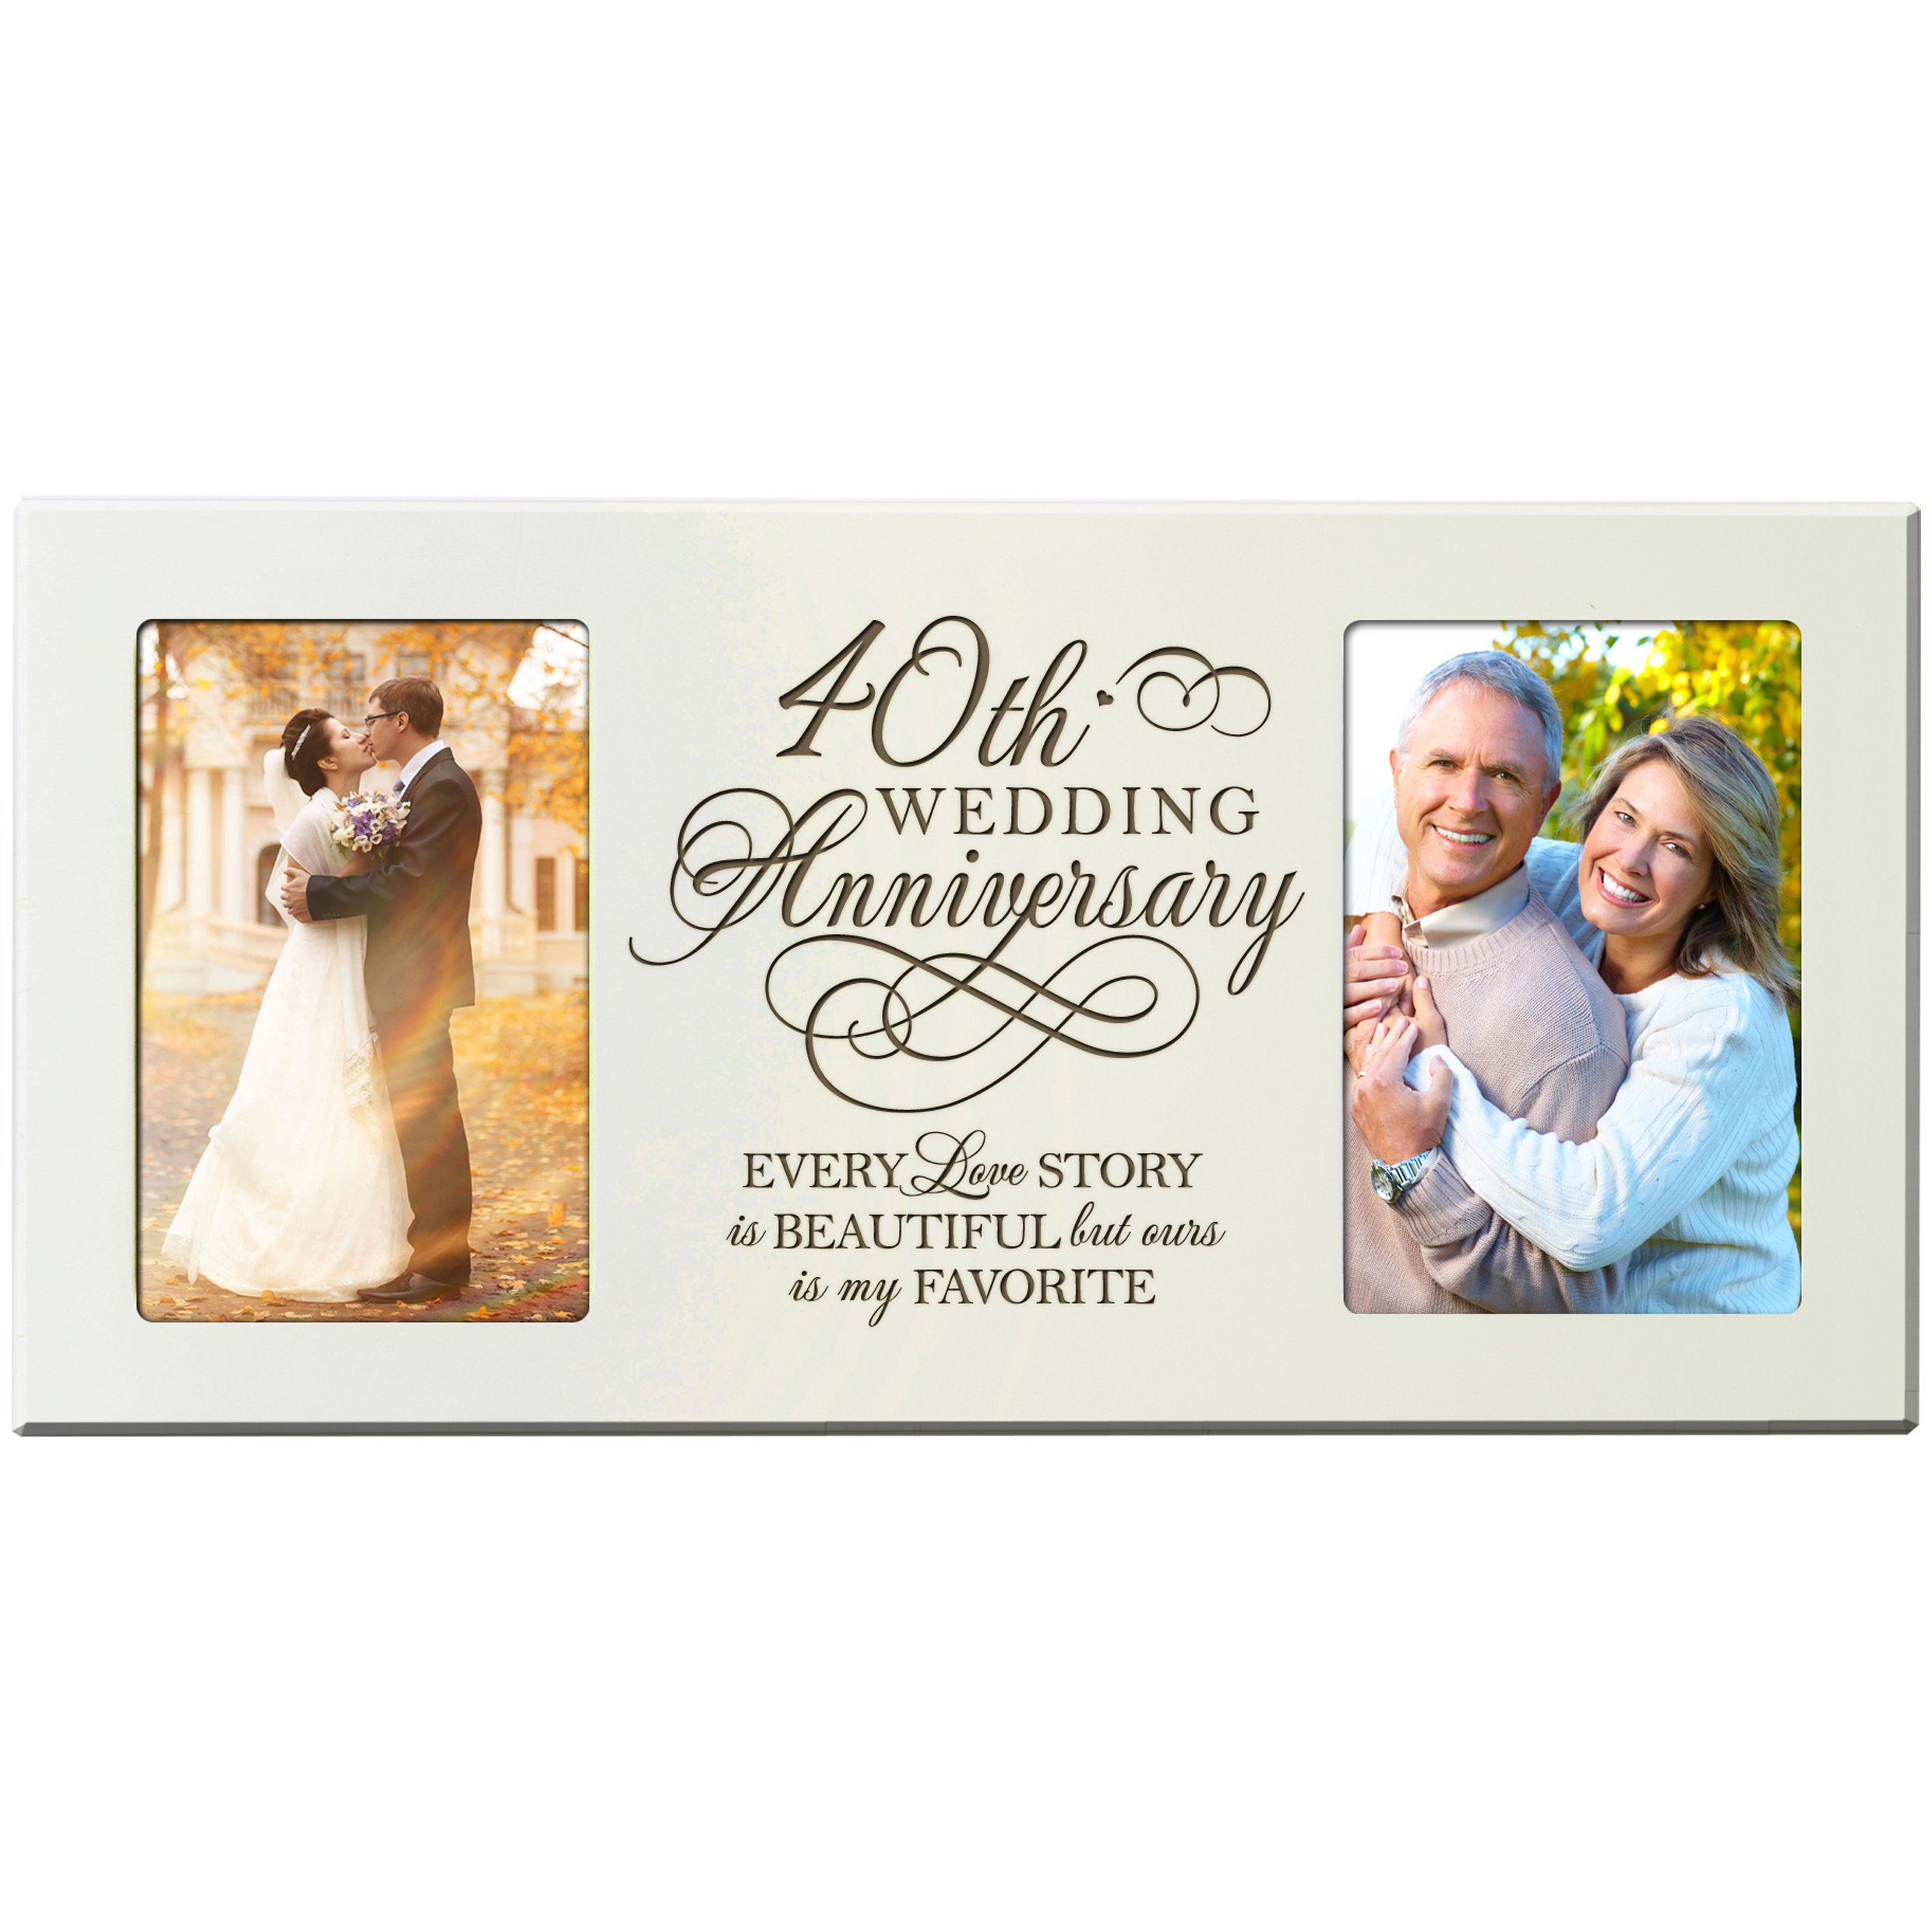 40th Wedding Anniversary Gifts for Couple 40 Year Anniversary Ideas Every Love Story Is Beautiful but Ours Is My Favorite Anniversary Picture Frame Gift for Photo Frame Holds 2- 4x6 Photos (Ivory)